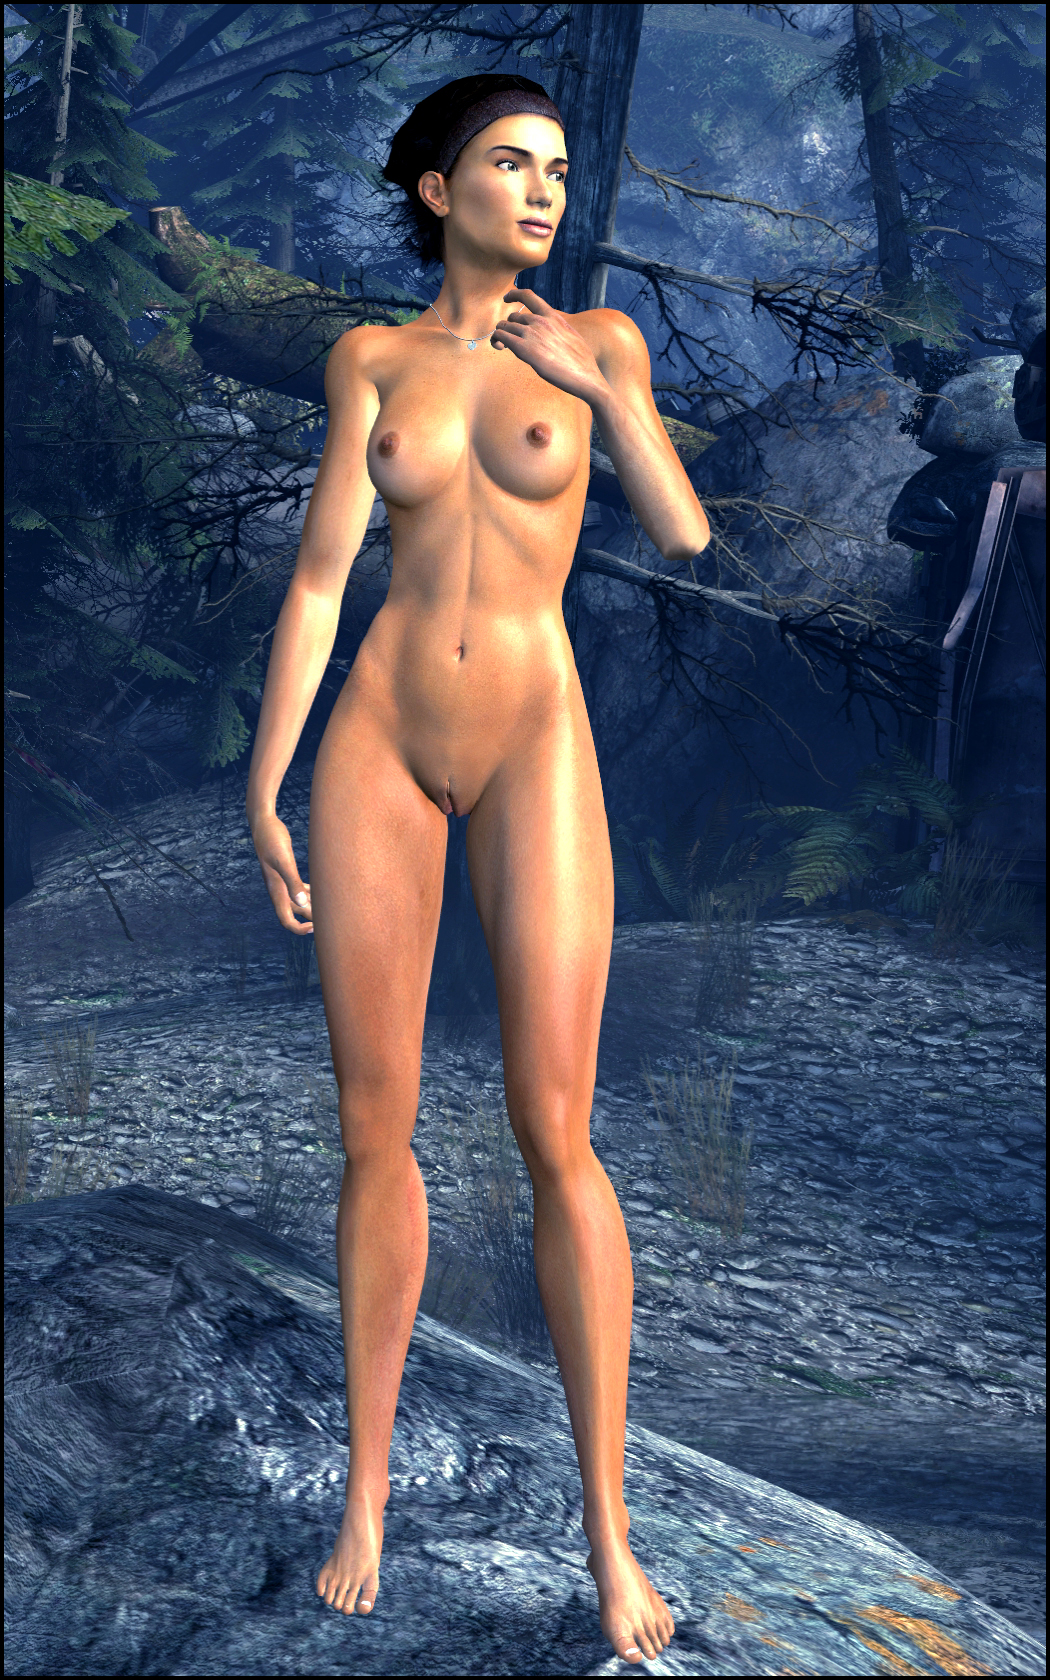 nude 4 female glorious mod fallout Five nights in anime pictures